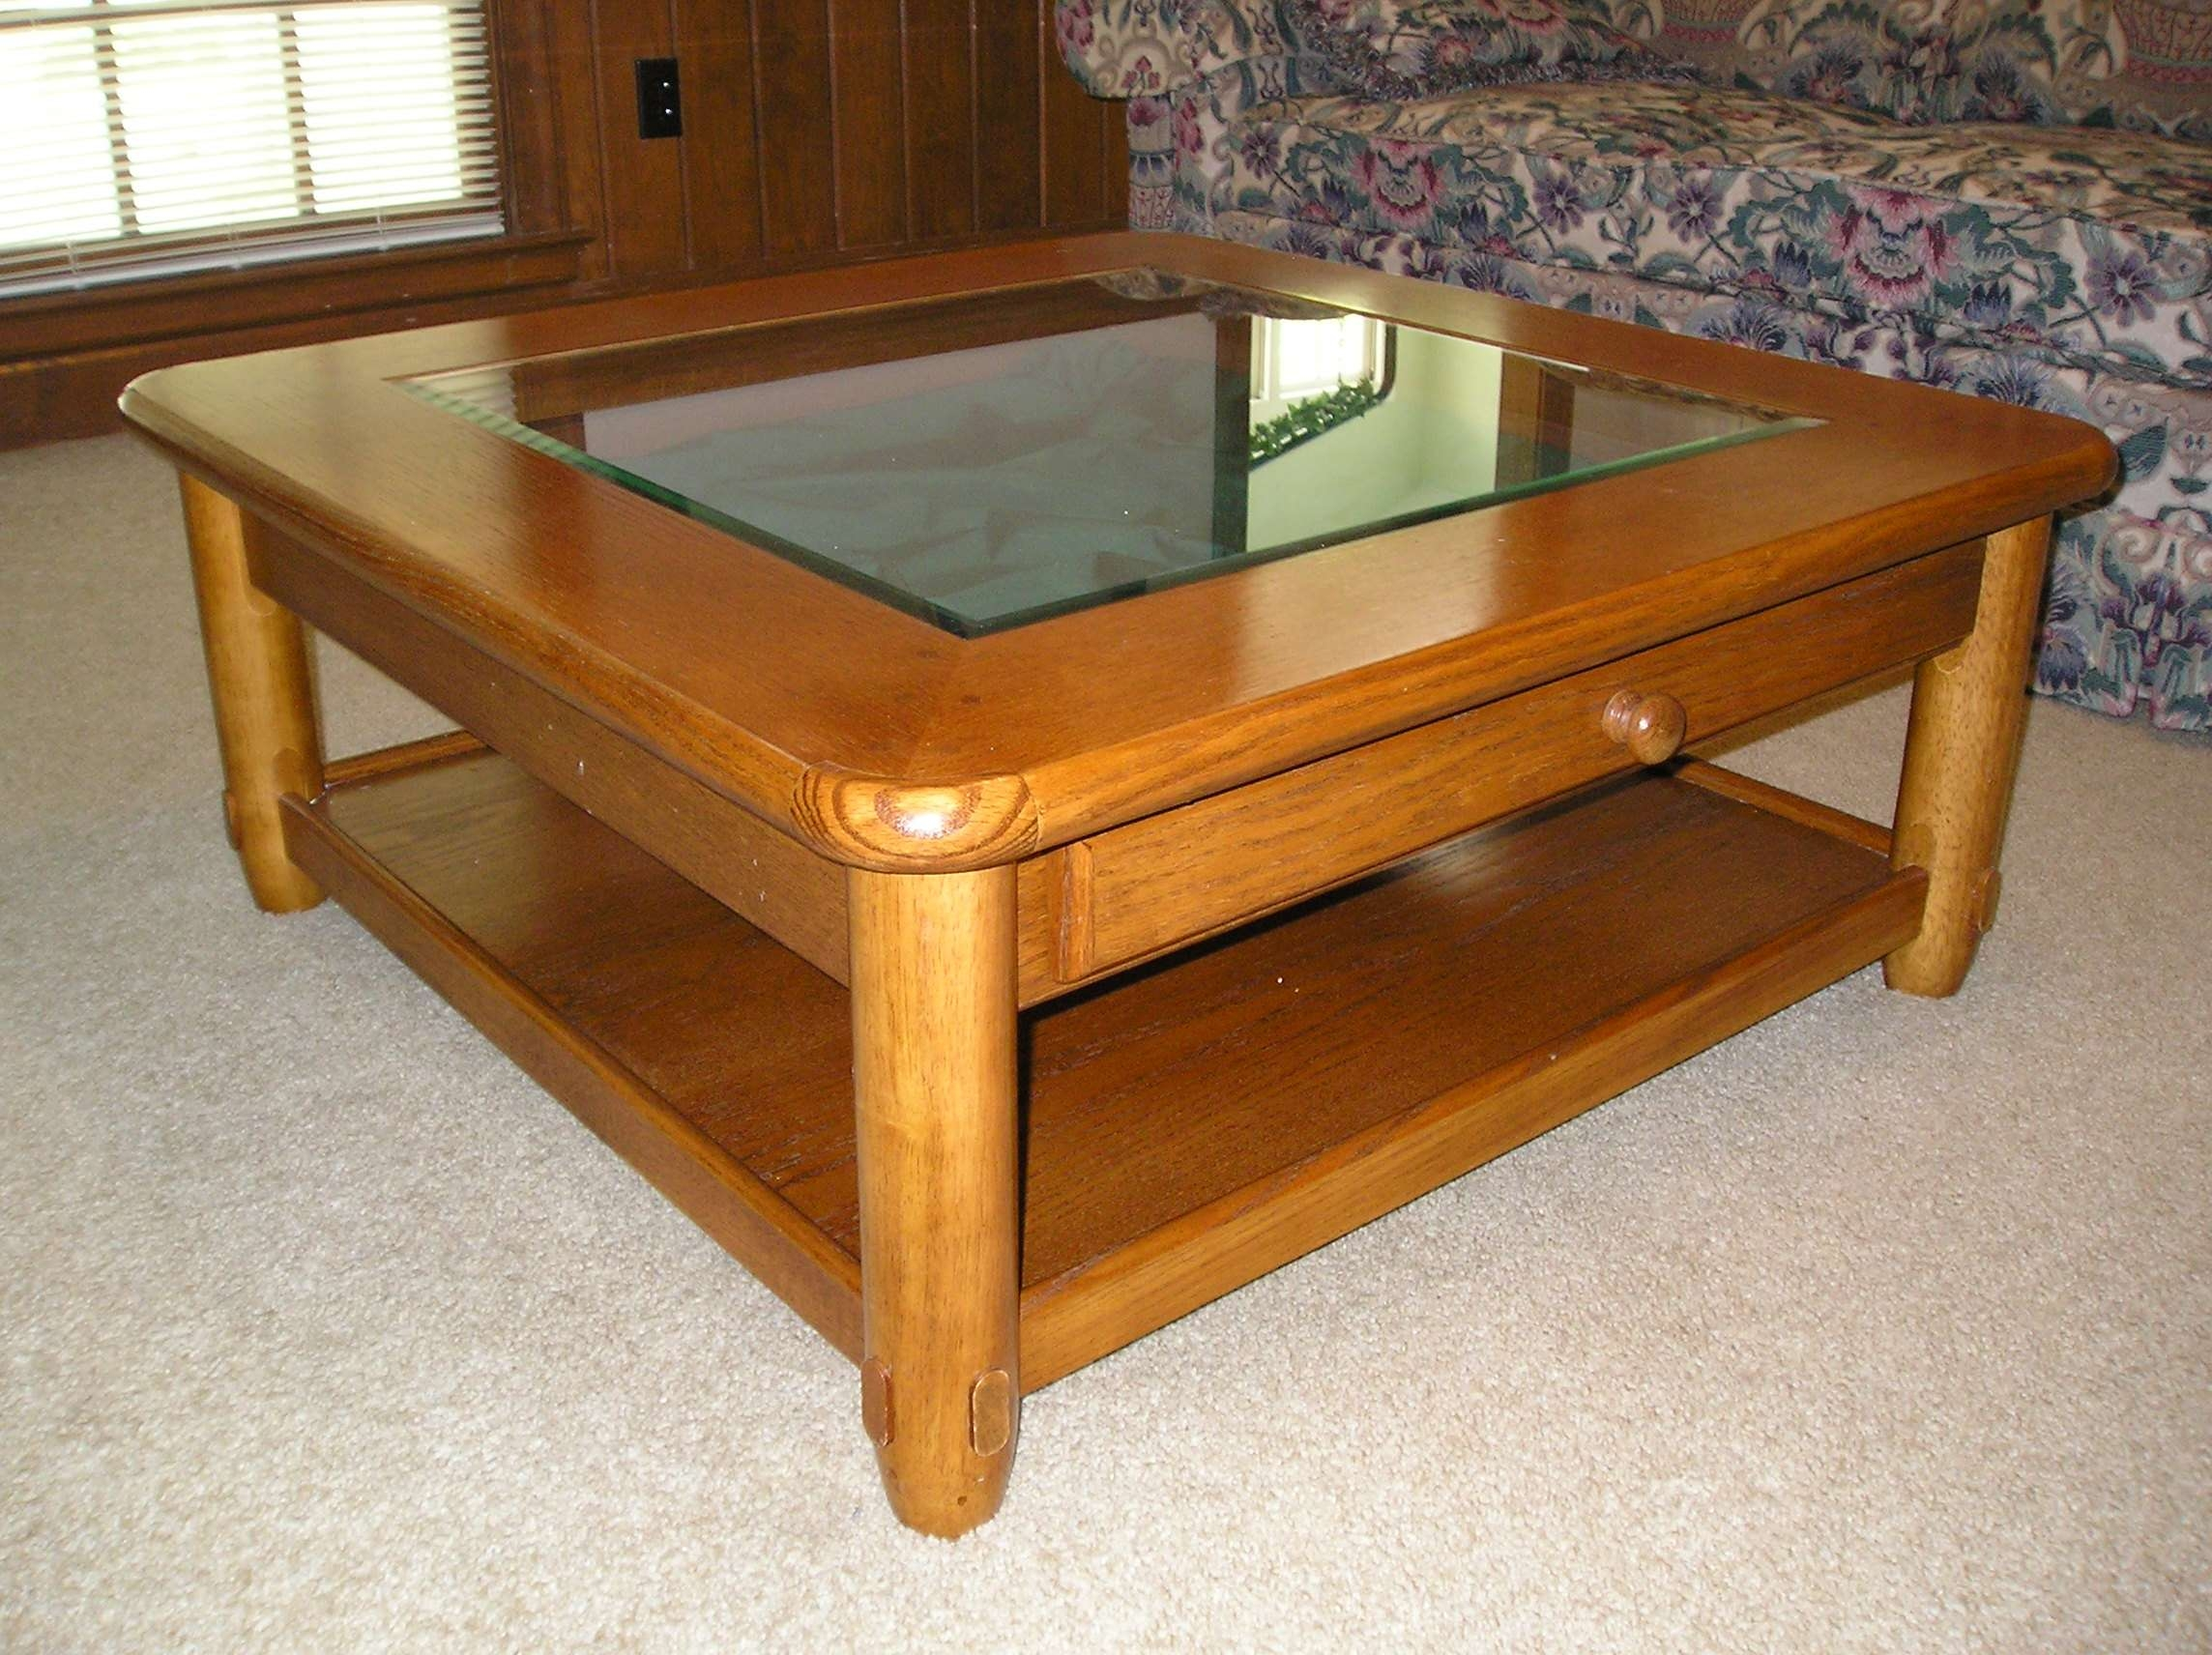 Fabulous Oak Coffee Table With Glass Top On Interior Home Design With Most Recent Oak And Glass Coffee Table (View 9 of 20)